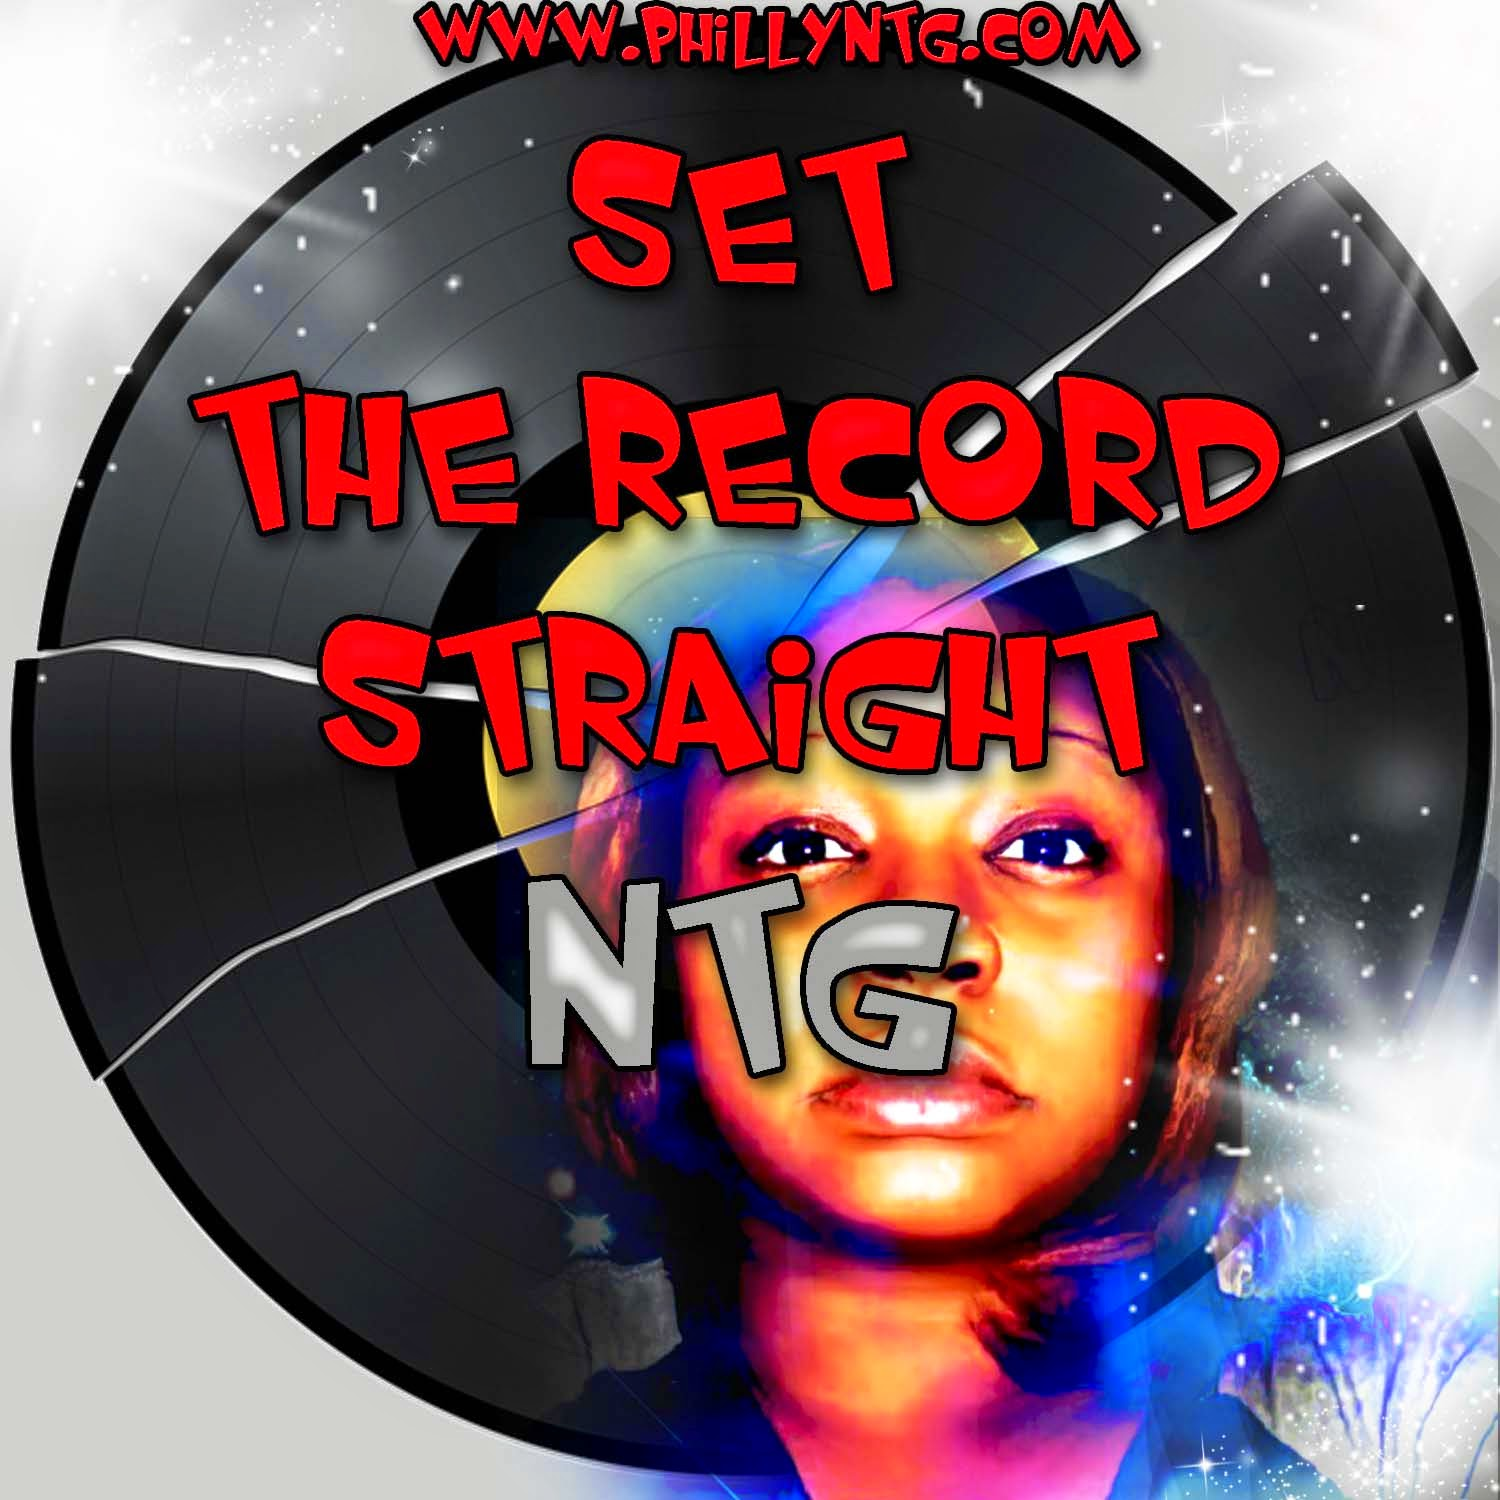 https://soundcloud.com/ntg2627/let-the-record-ltraight-ntg-prod-by-javon-gibbl